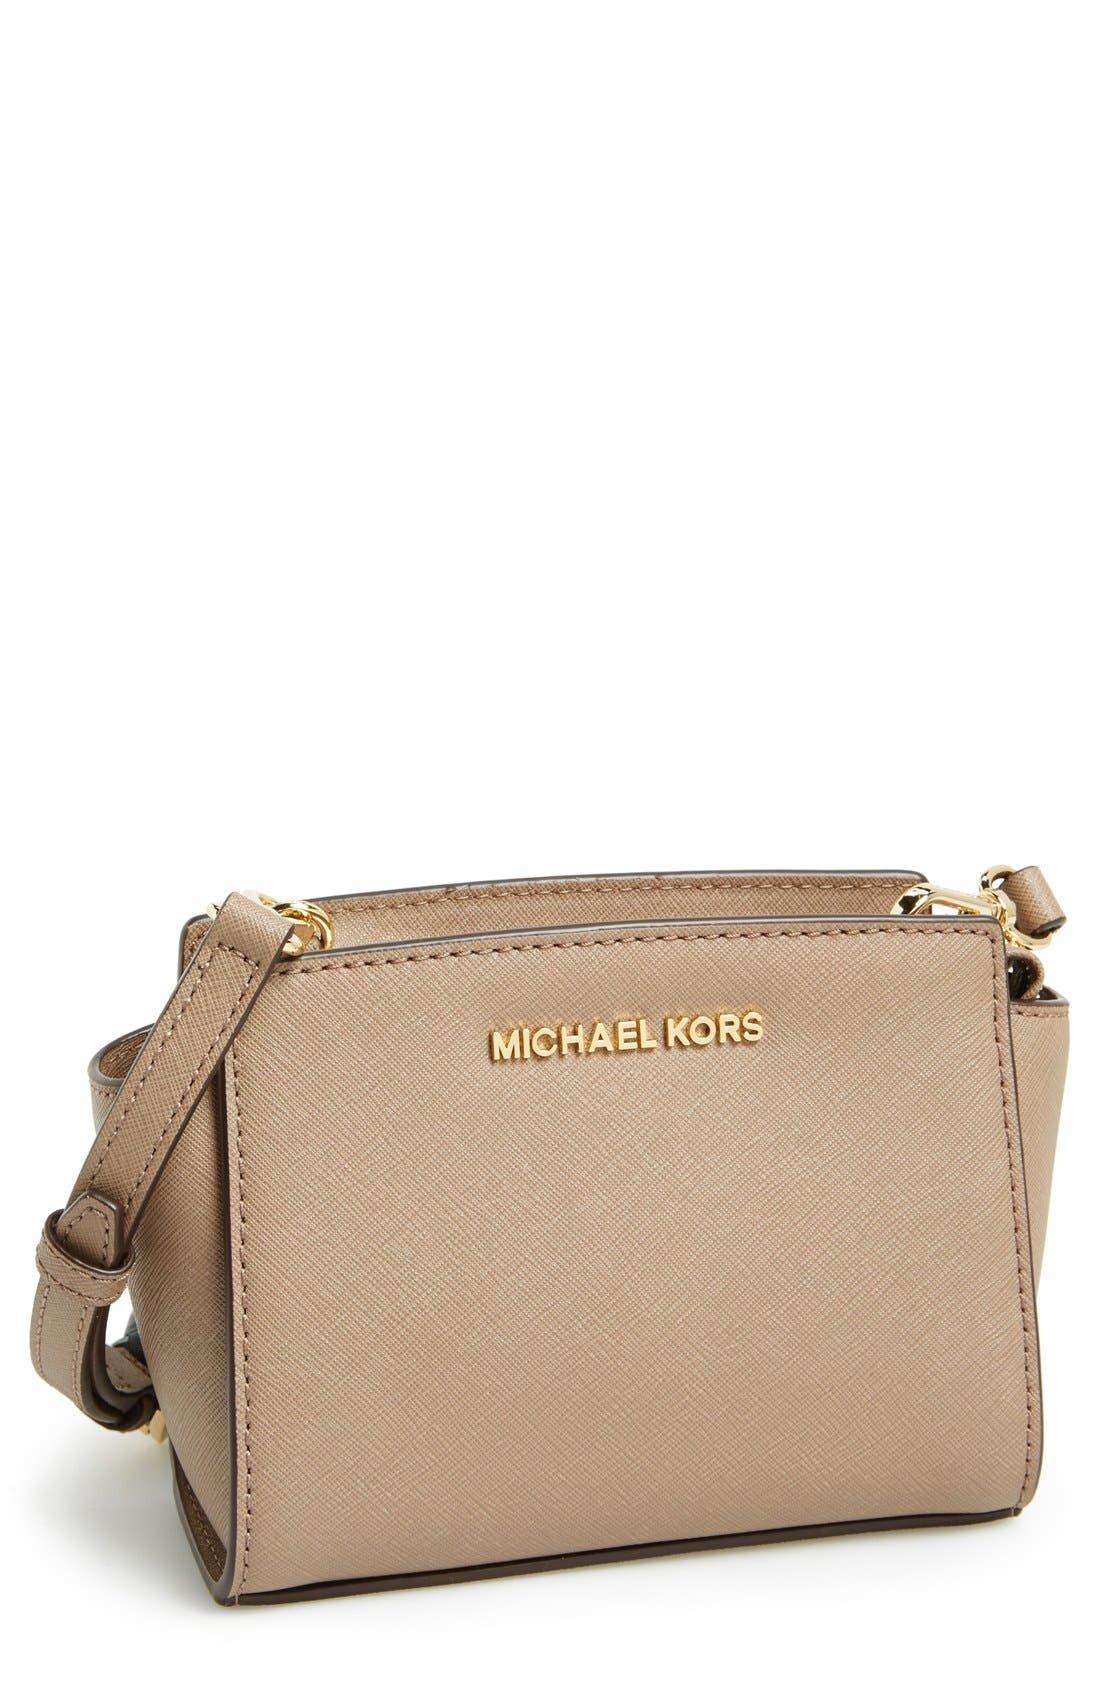 Alternate Image 1 Selected - MICHAEL Michael Kors 'Selma - Mini' Saffiano Leather Messenger Bag